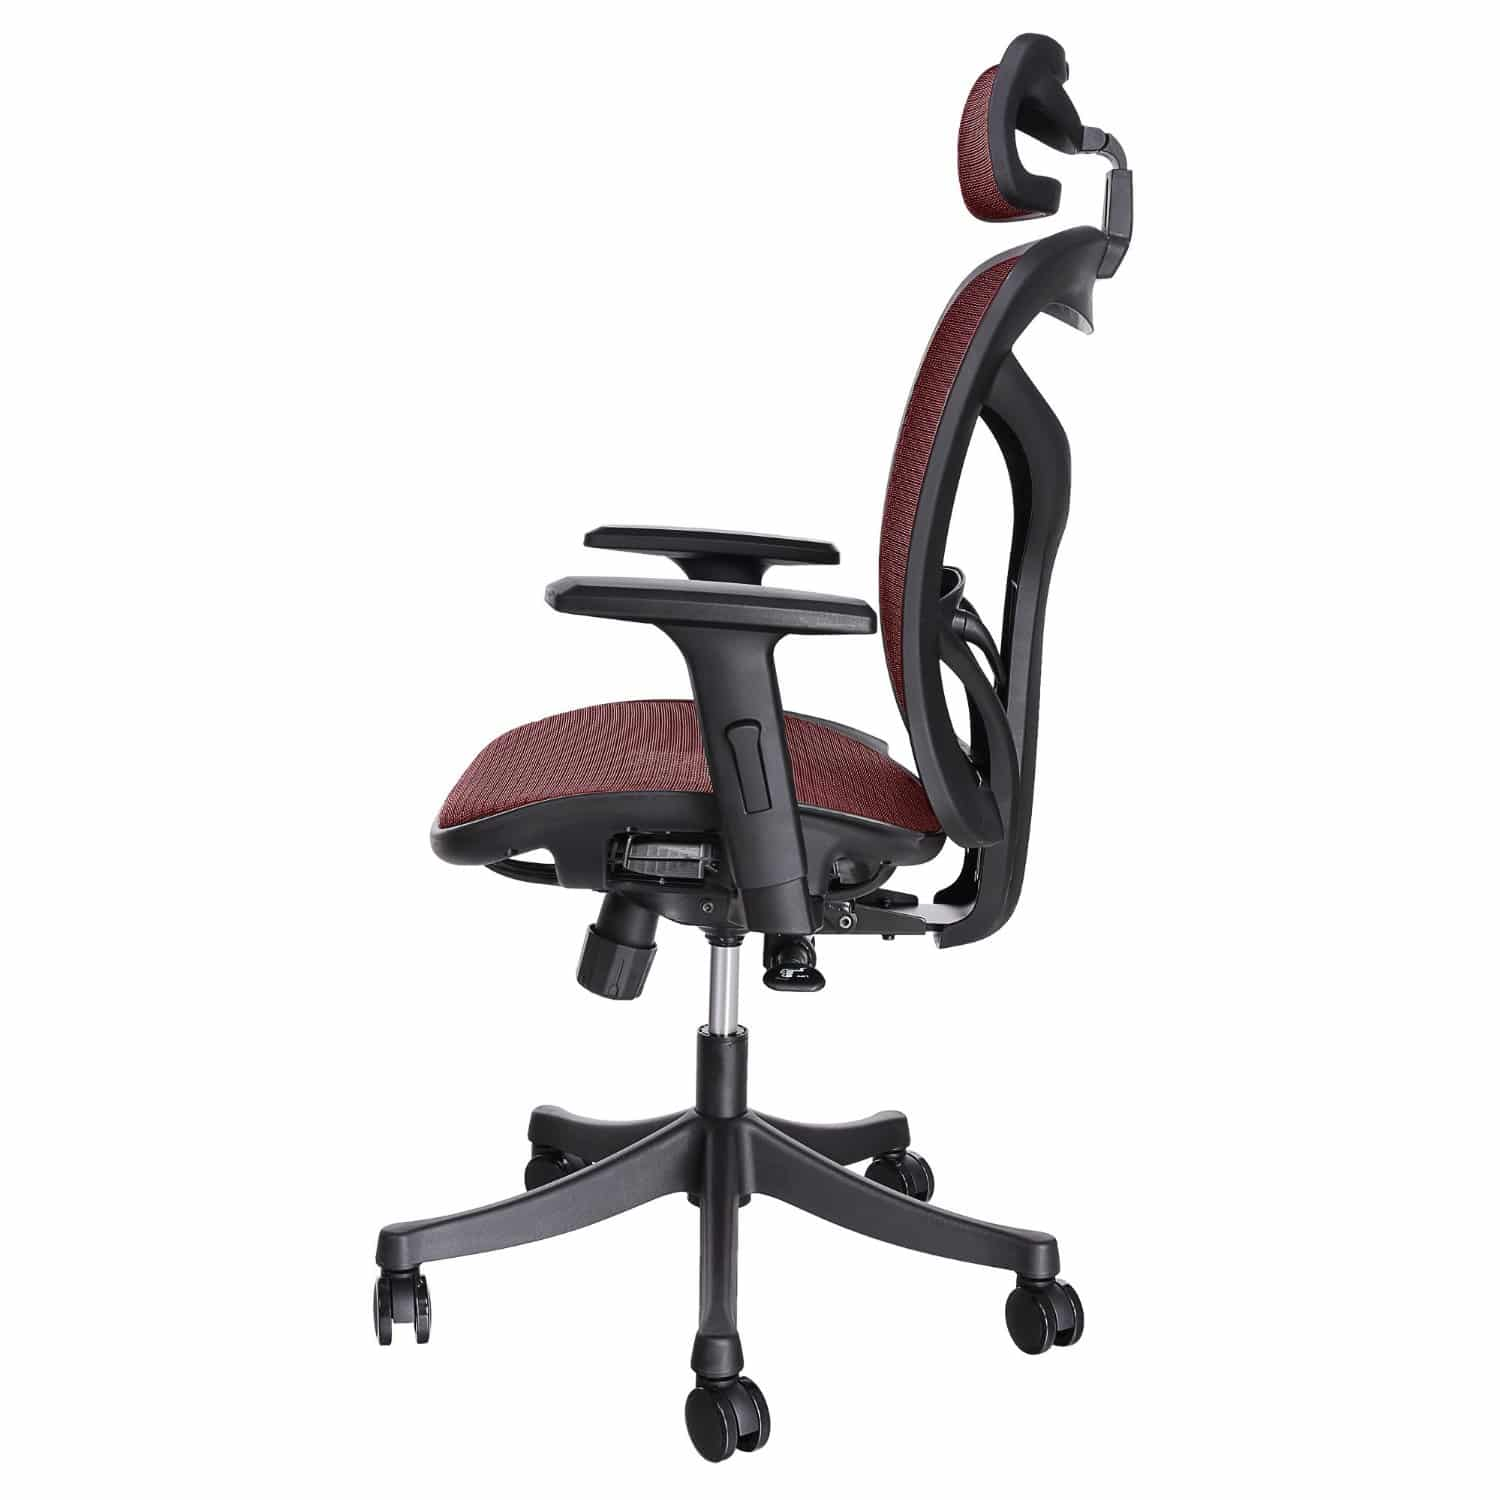 Ancheer Mount Ergonomic Mesh Office Chair Deals Coupons Reviews